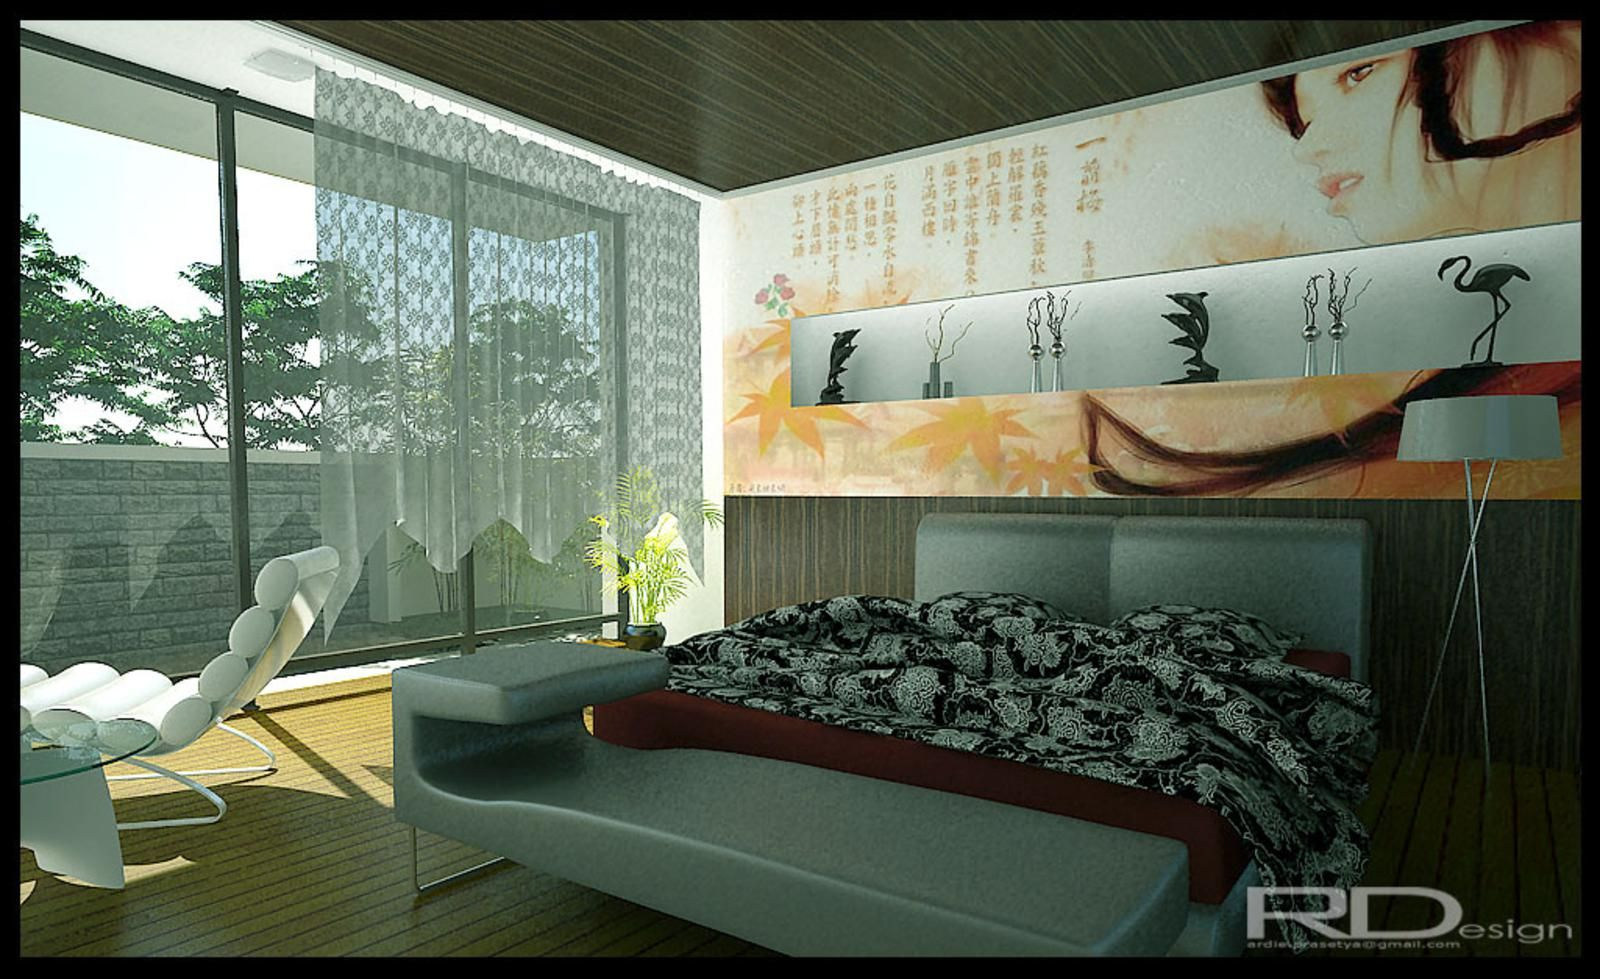 Traditional chinese house interior luxury modern bedroom  home decorum and ideas  pinterest  luxury